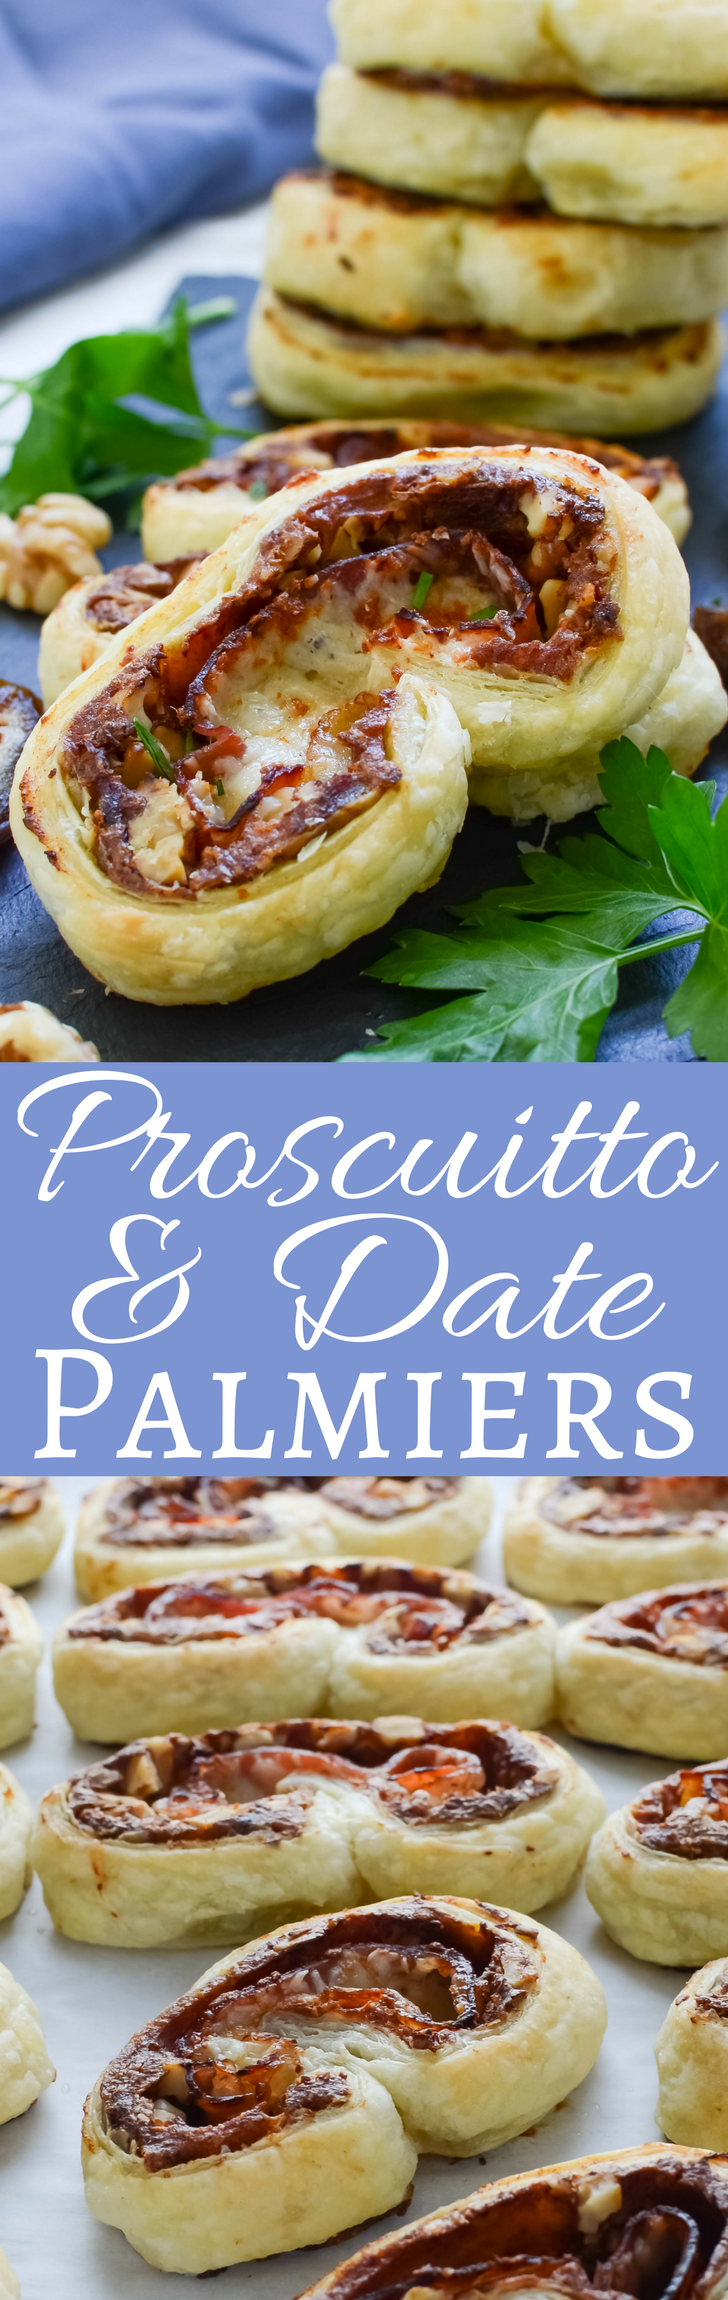 This make ahead appetizer recipe with puff pastry, prosciutto, dates, cheese & crunchy walnuts is deliciously different. Perfect with cocktails!